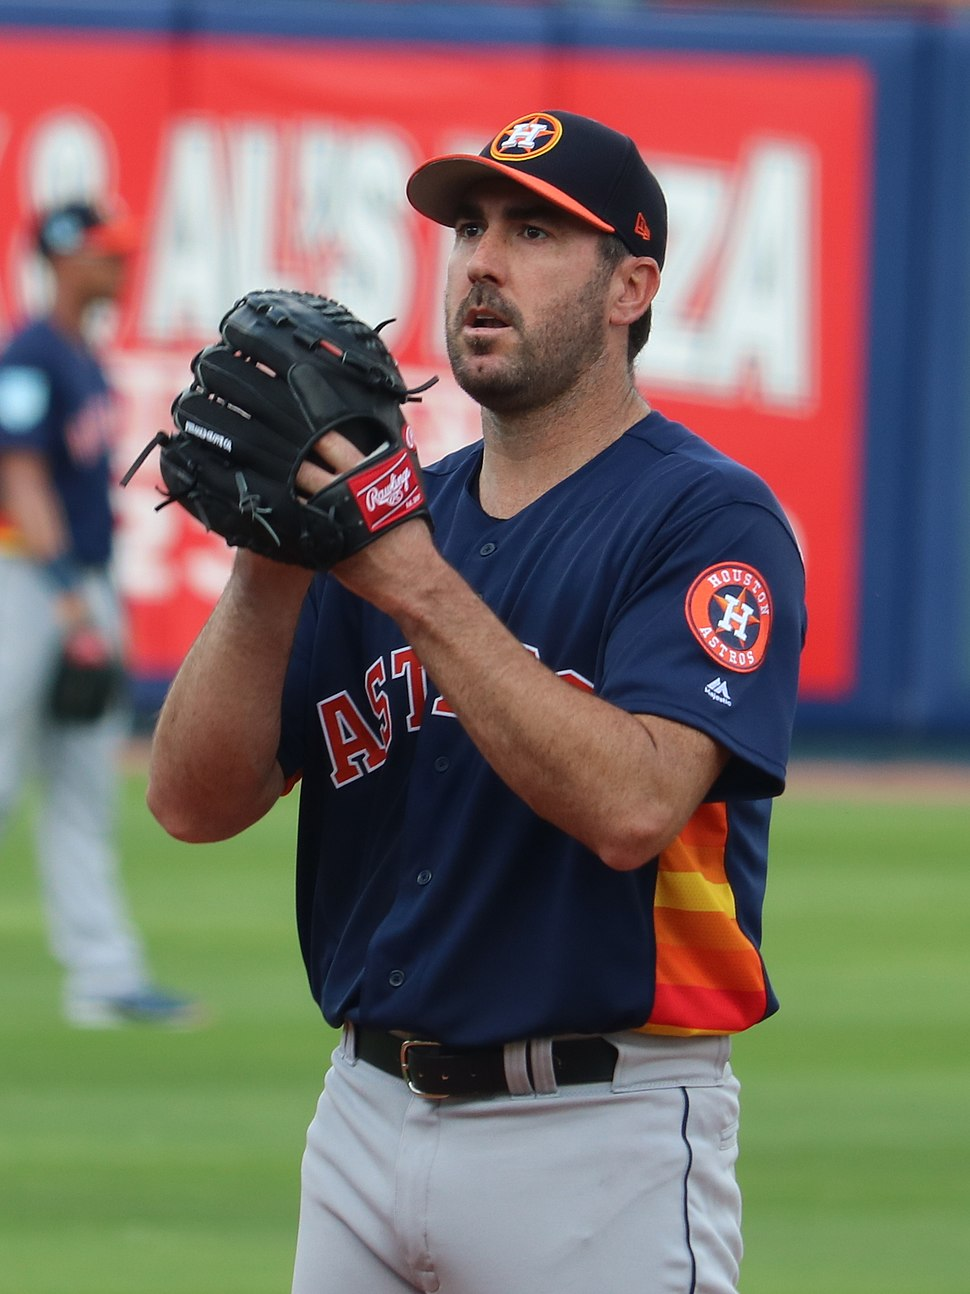 Justin Verlander ready to throw his pitch, March 2, 2019 (cropped)